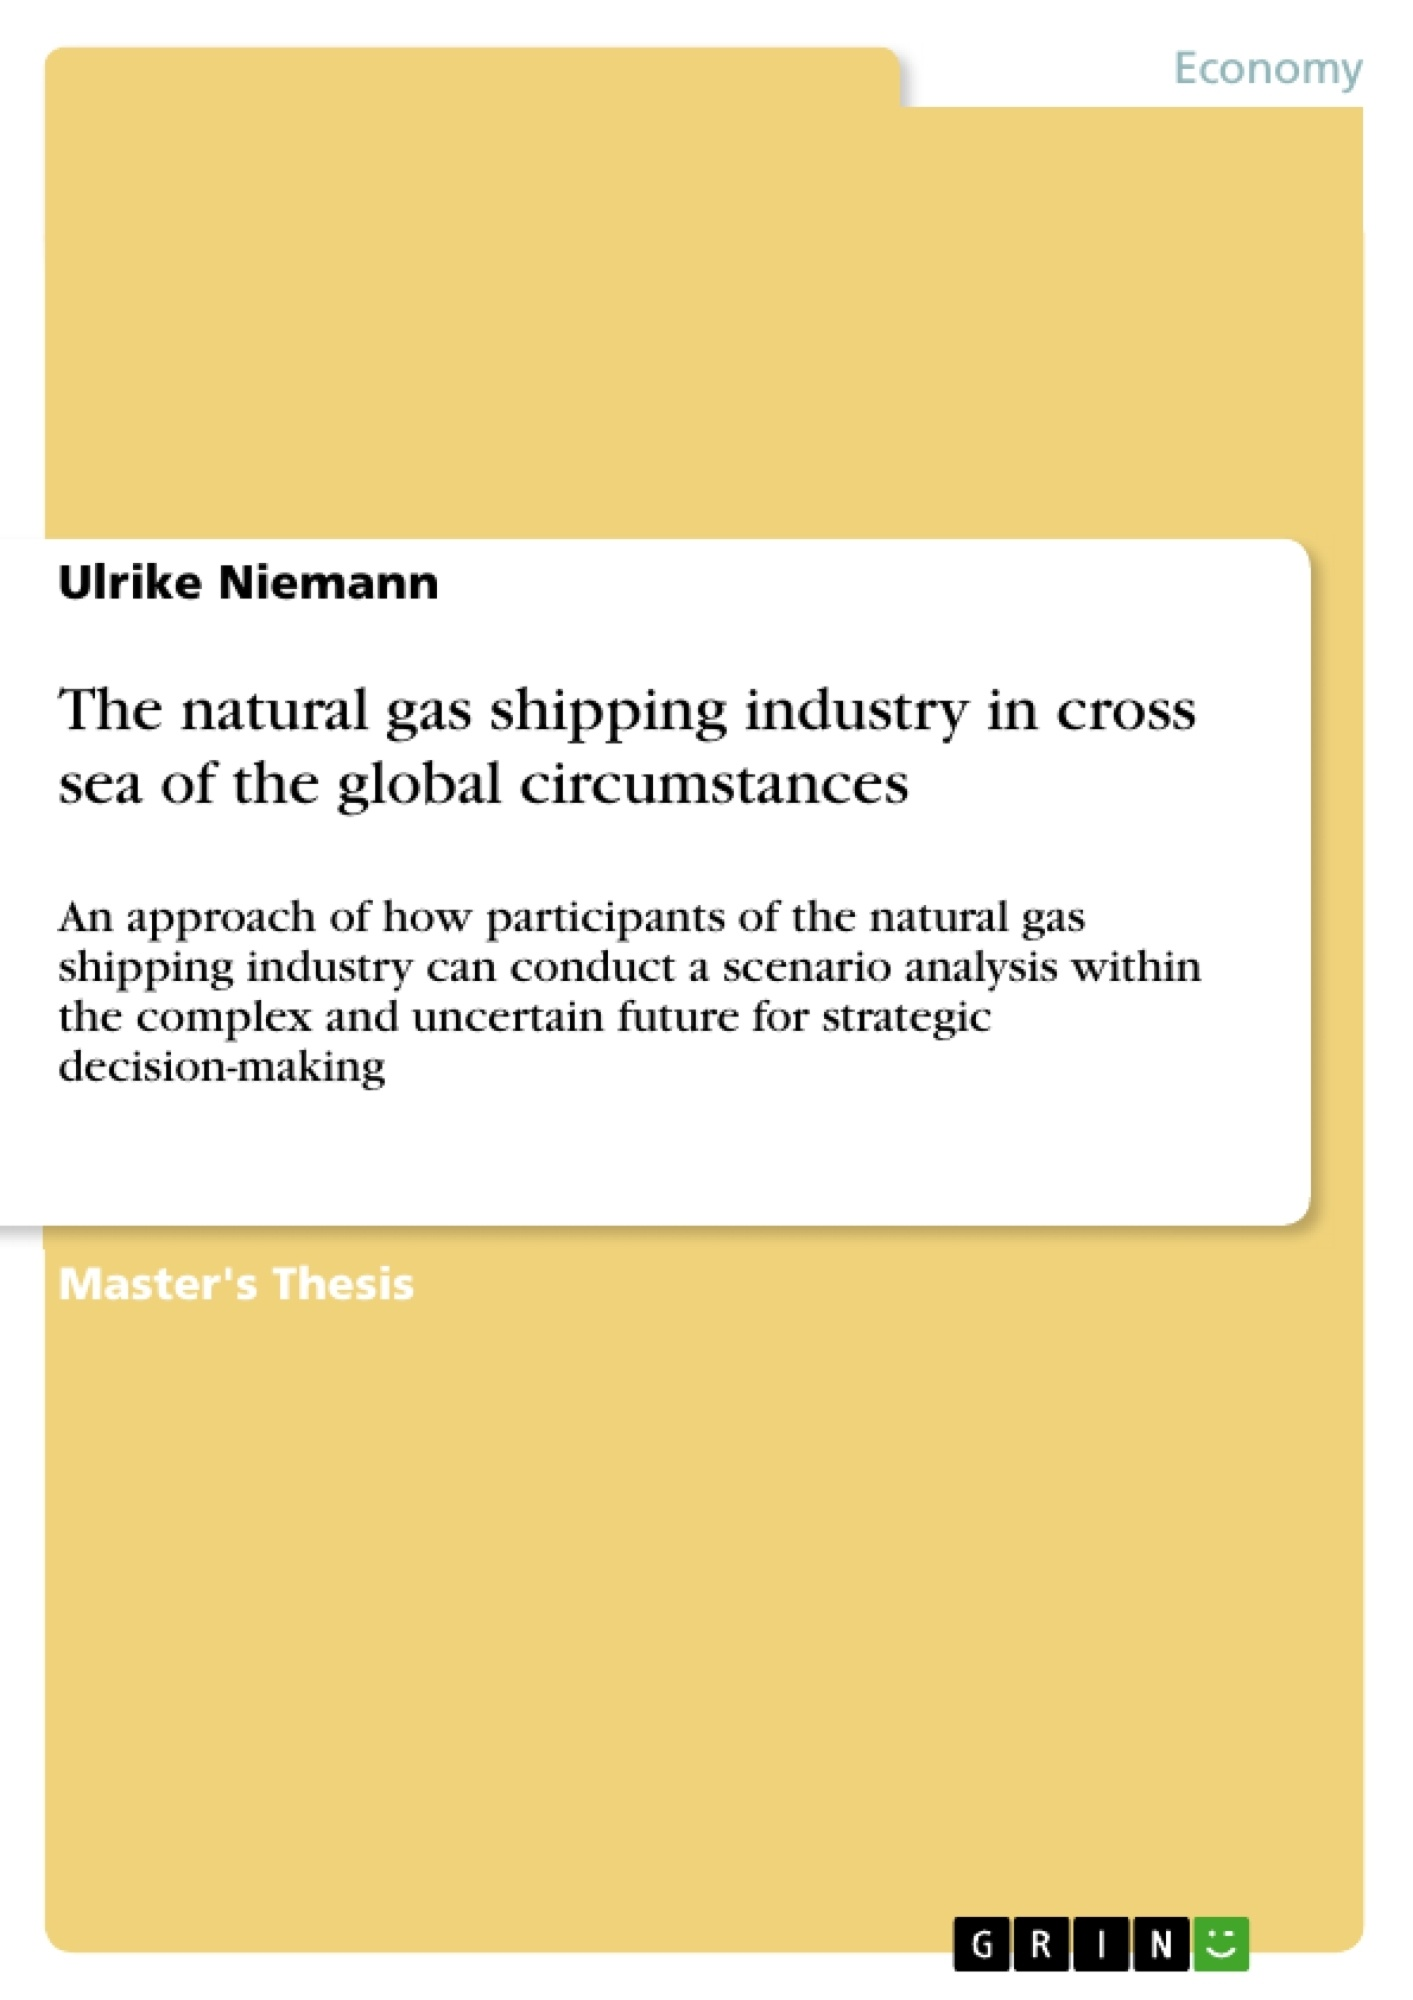 Title: The natural gas shipping industry in cross sea of the global circumstances